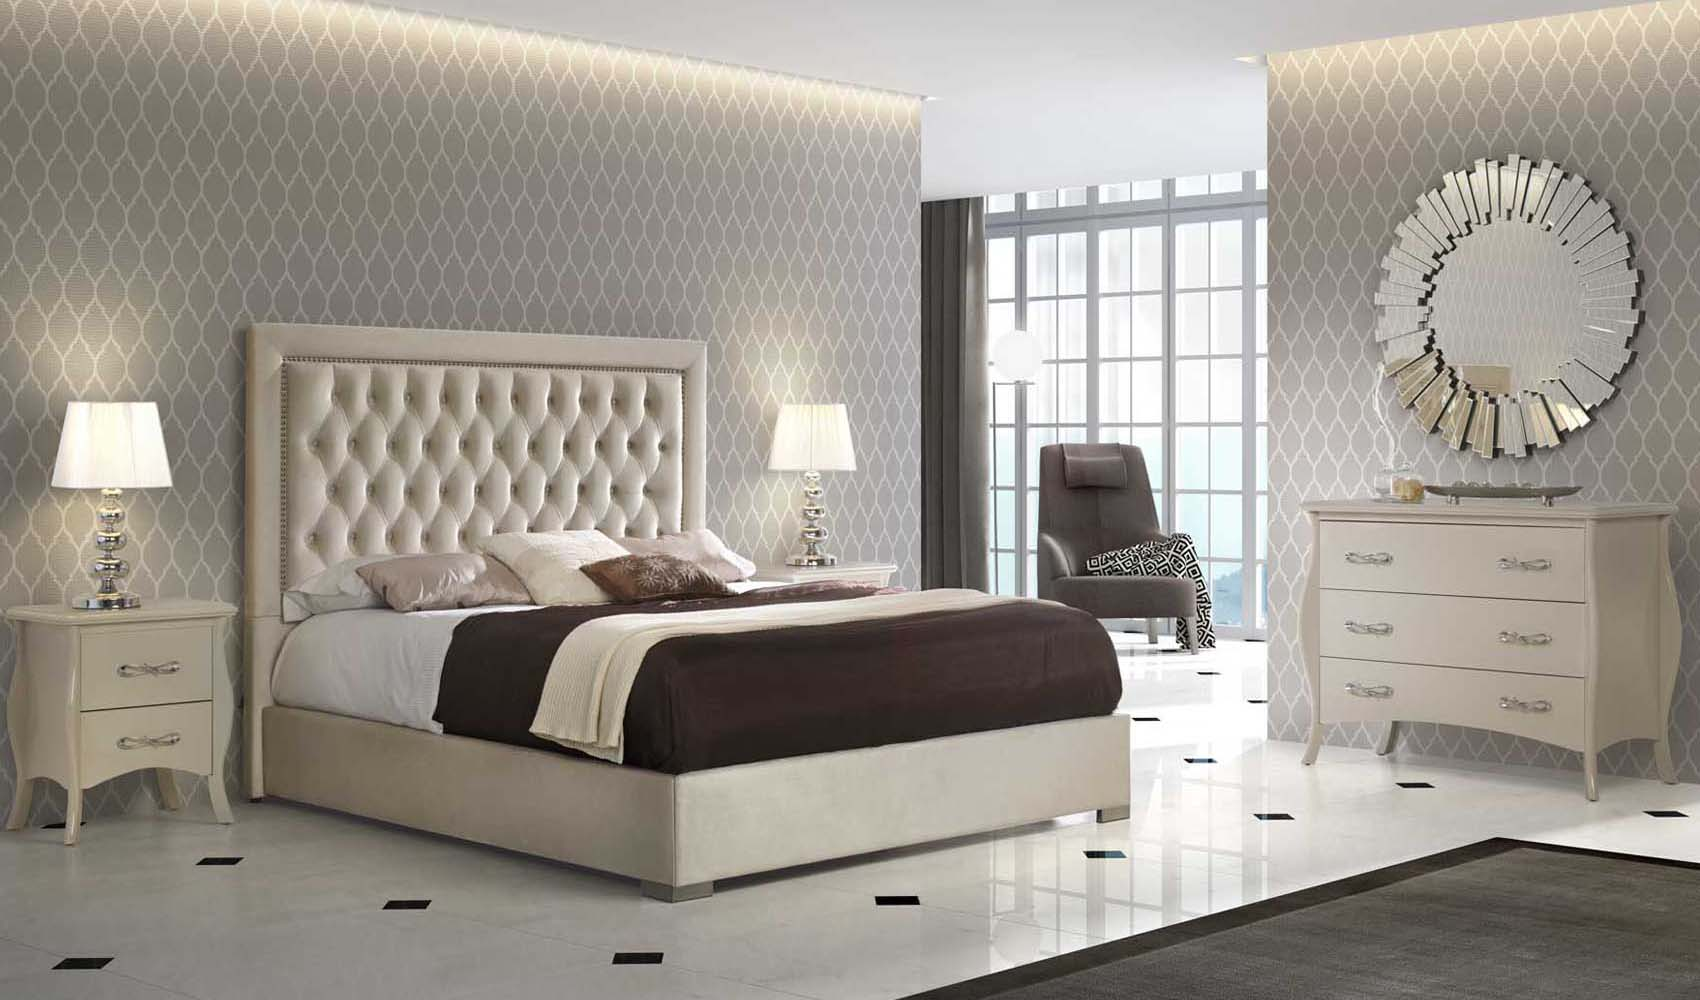 High End Modern Design Cream Bedroom Set